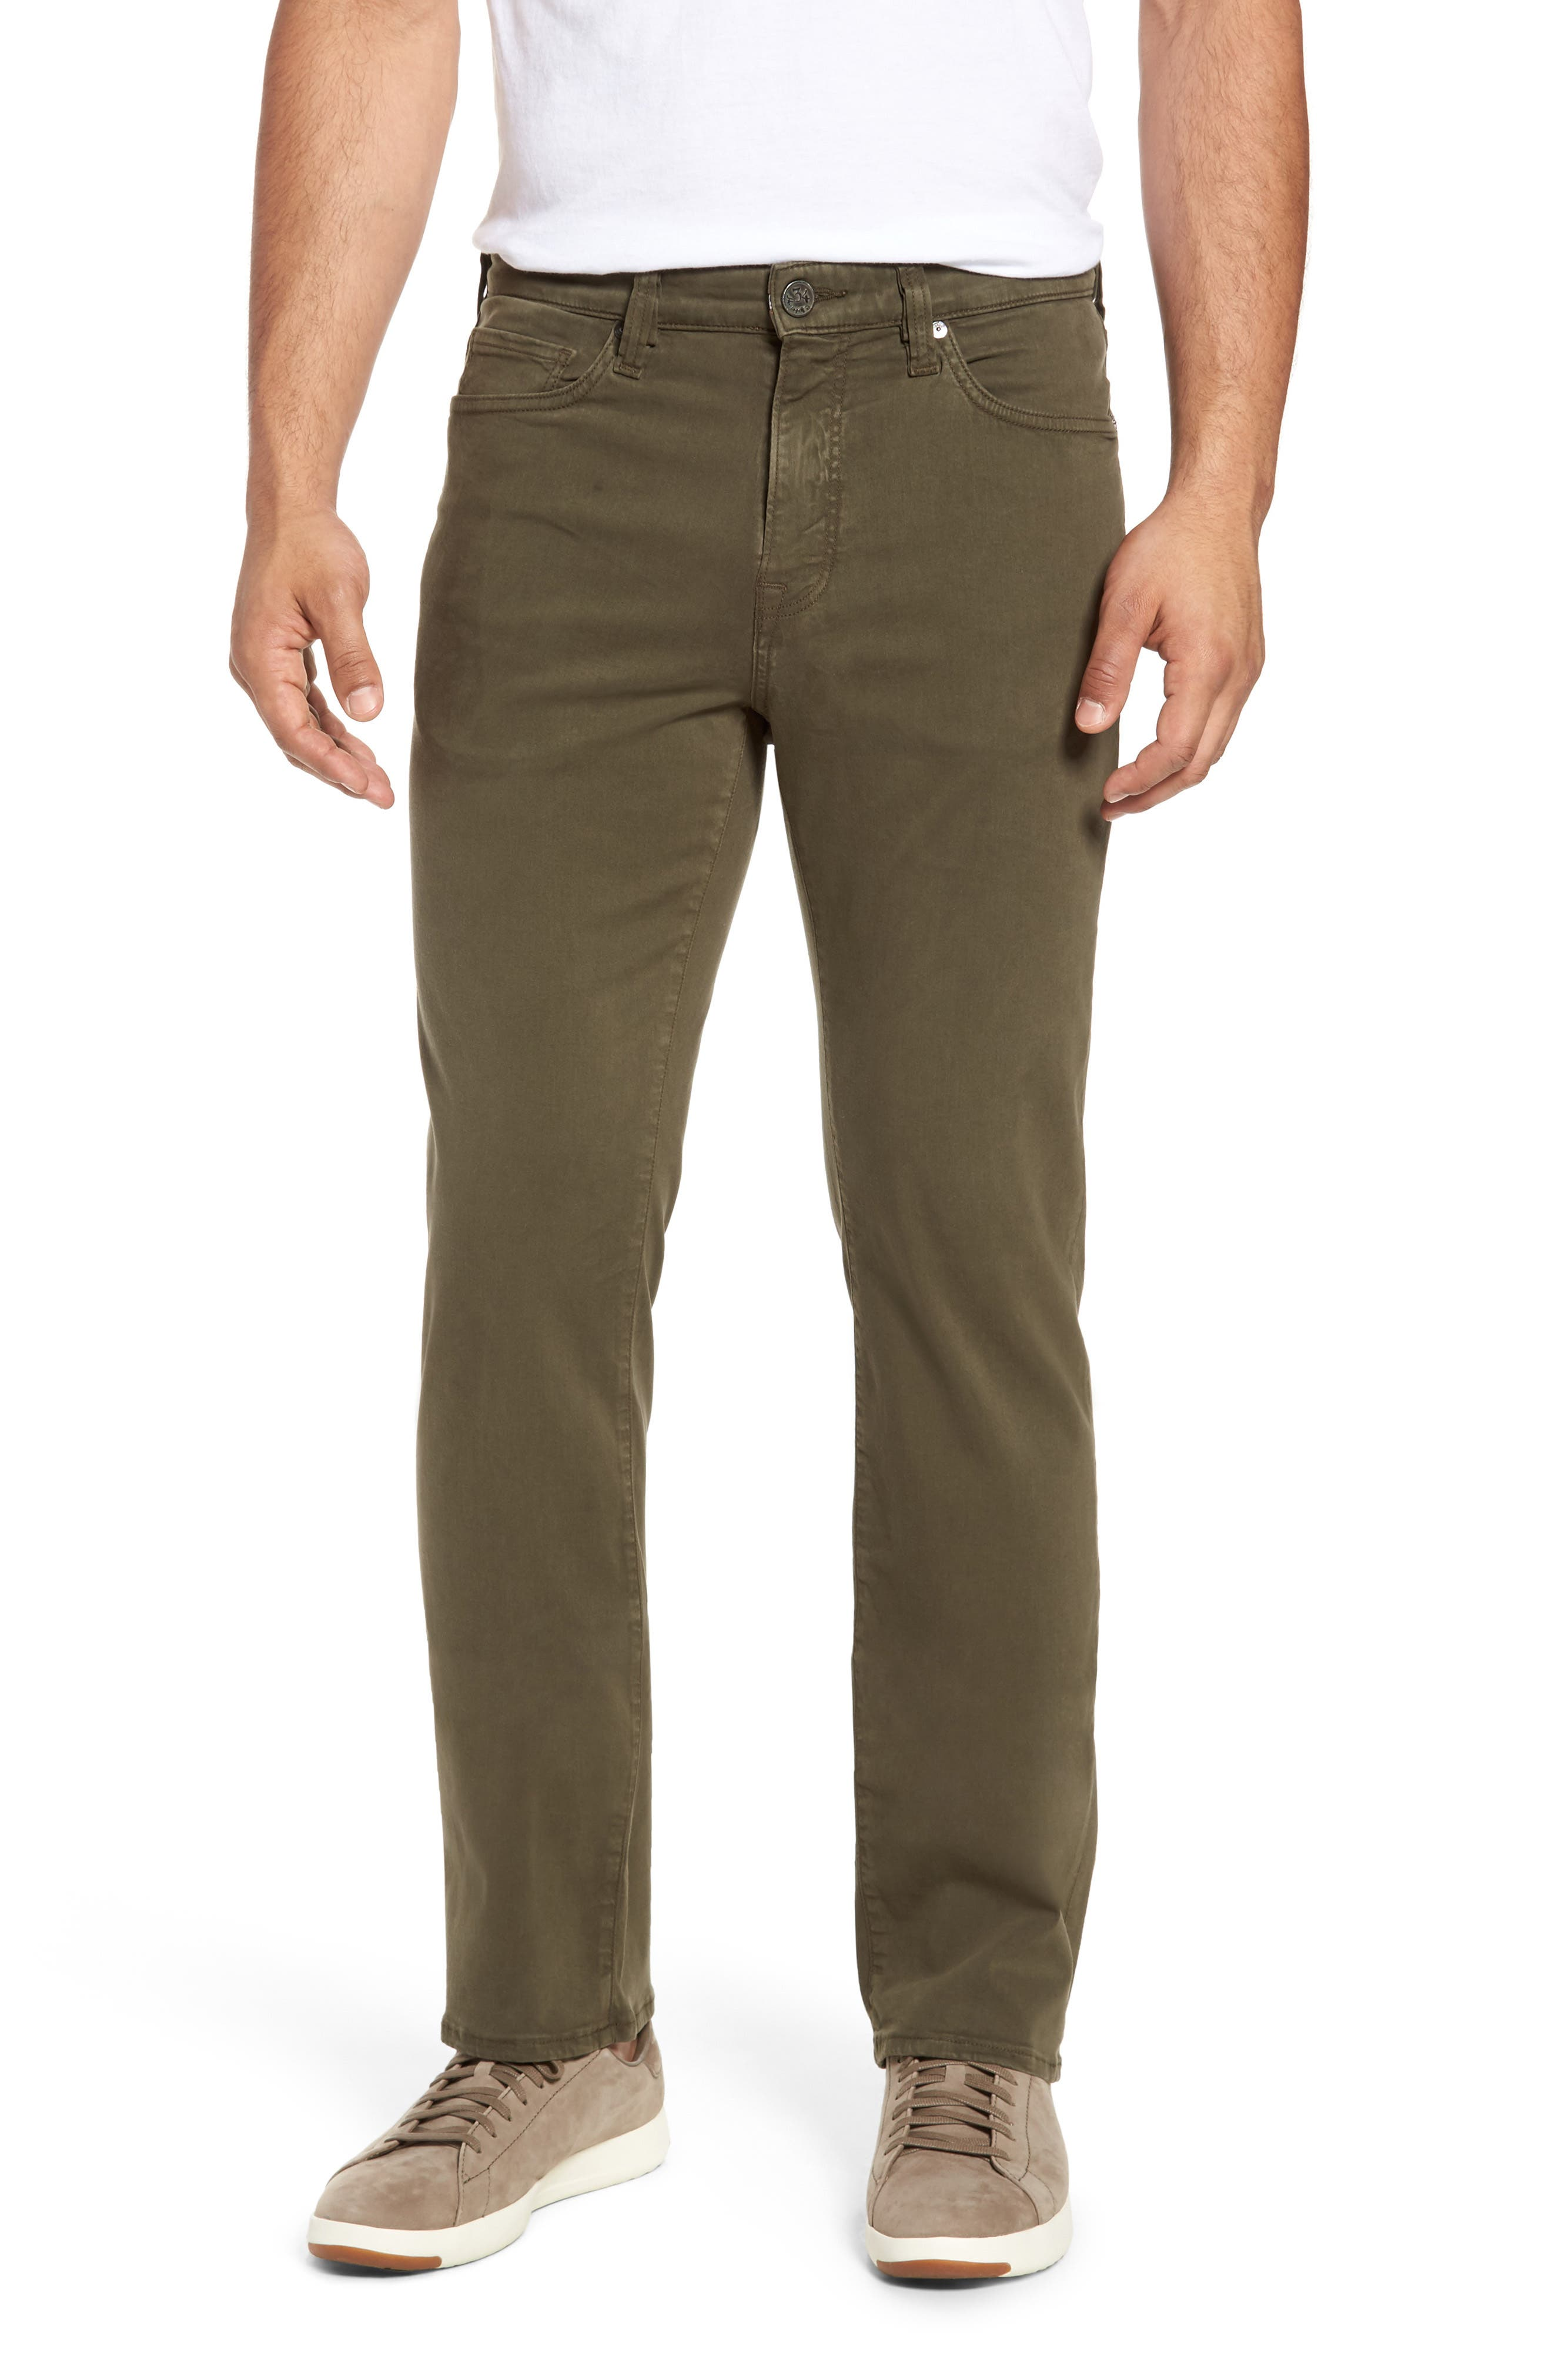 Charisma Relaxed Fit Pants,                             Main thumbnail 1, color,                             Olive Twill